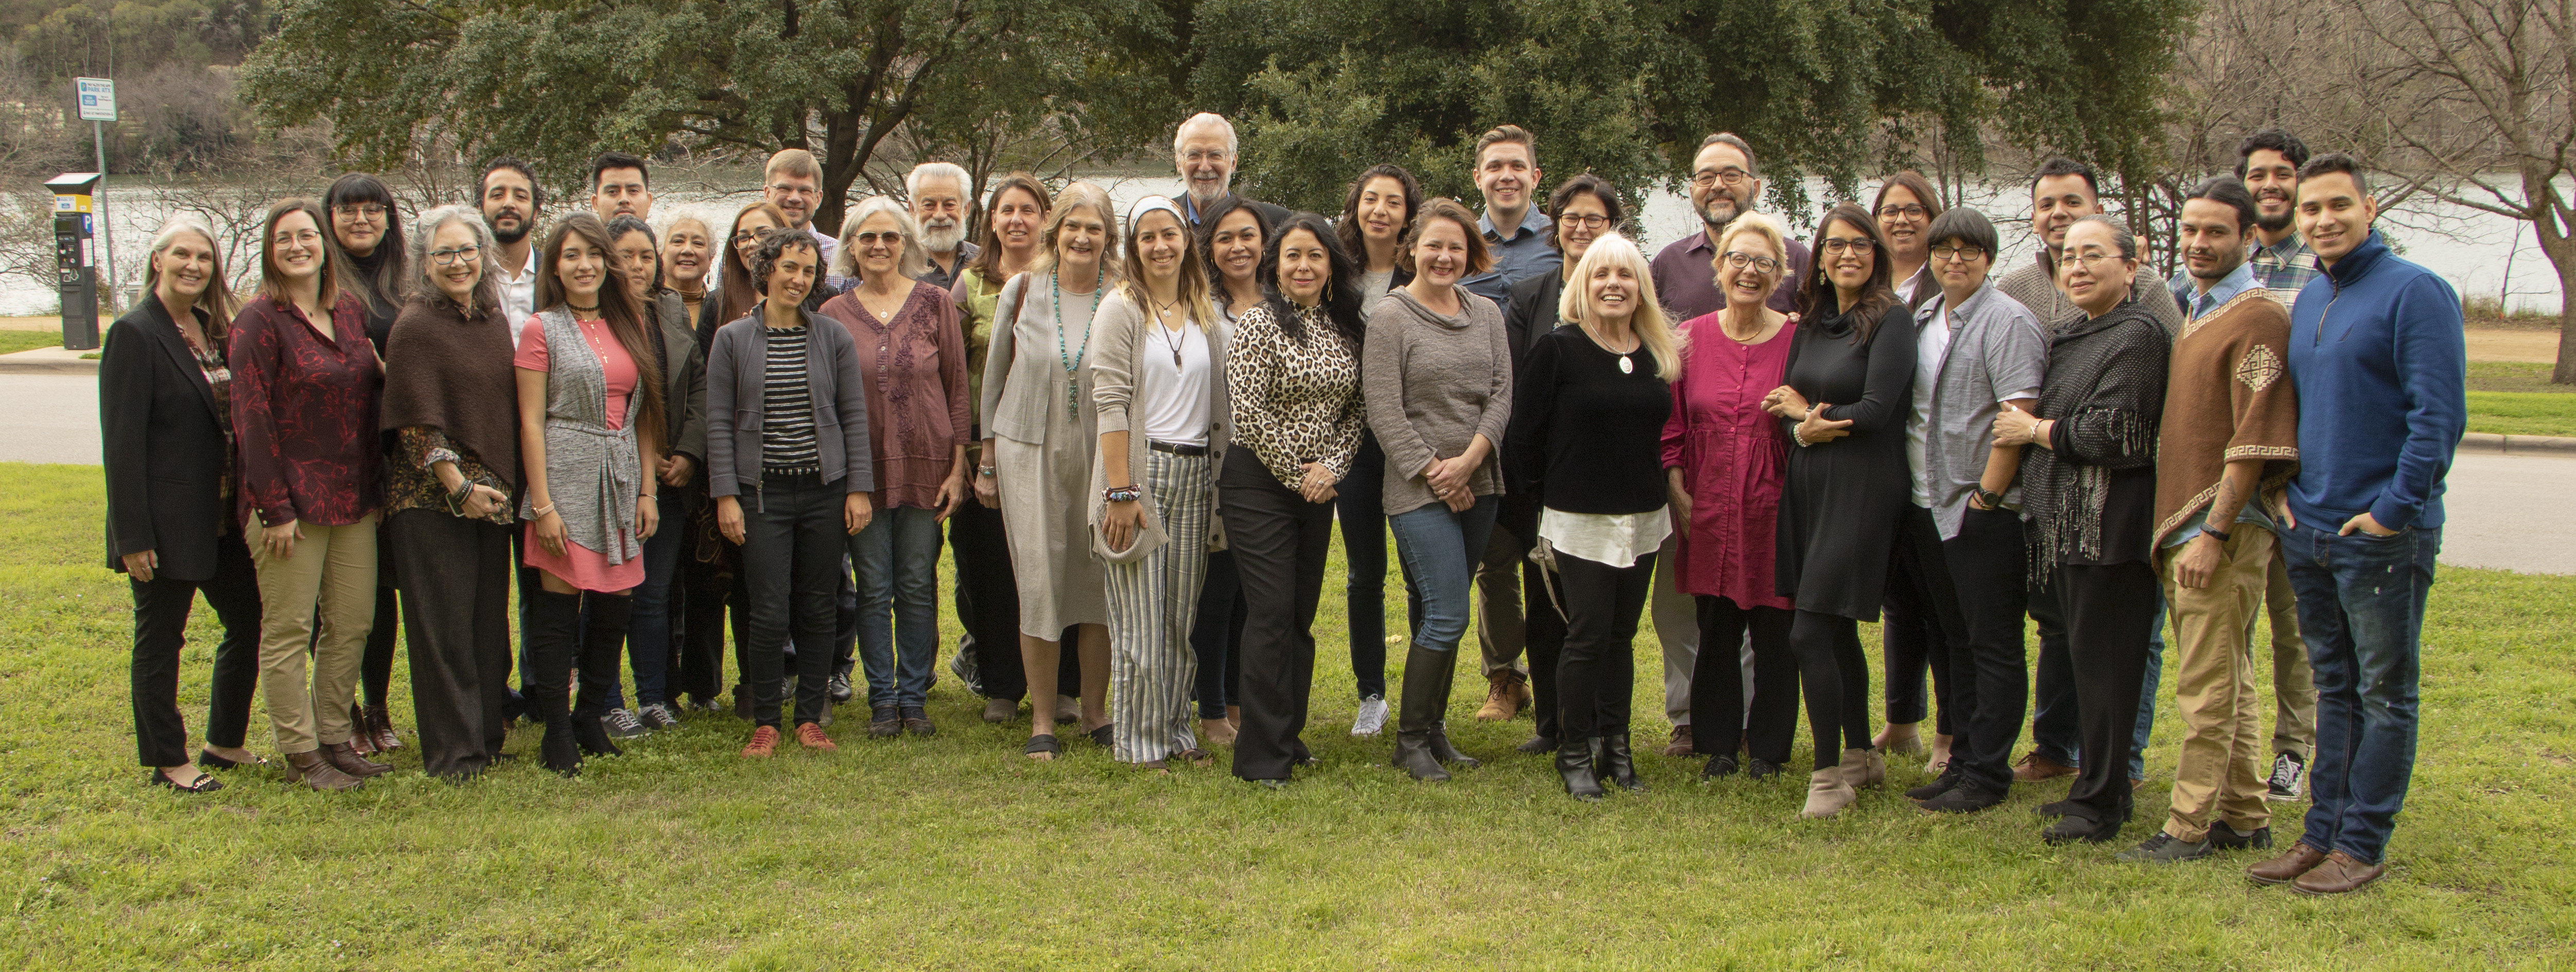 MCN Staff and Board at the 2020 Strategic Planning Meeting in Austin, TX